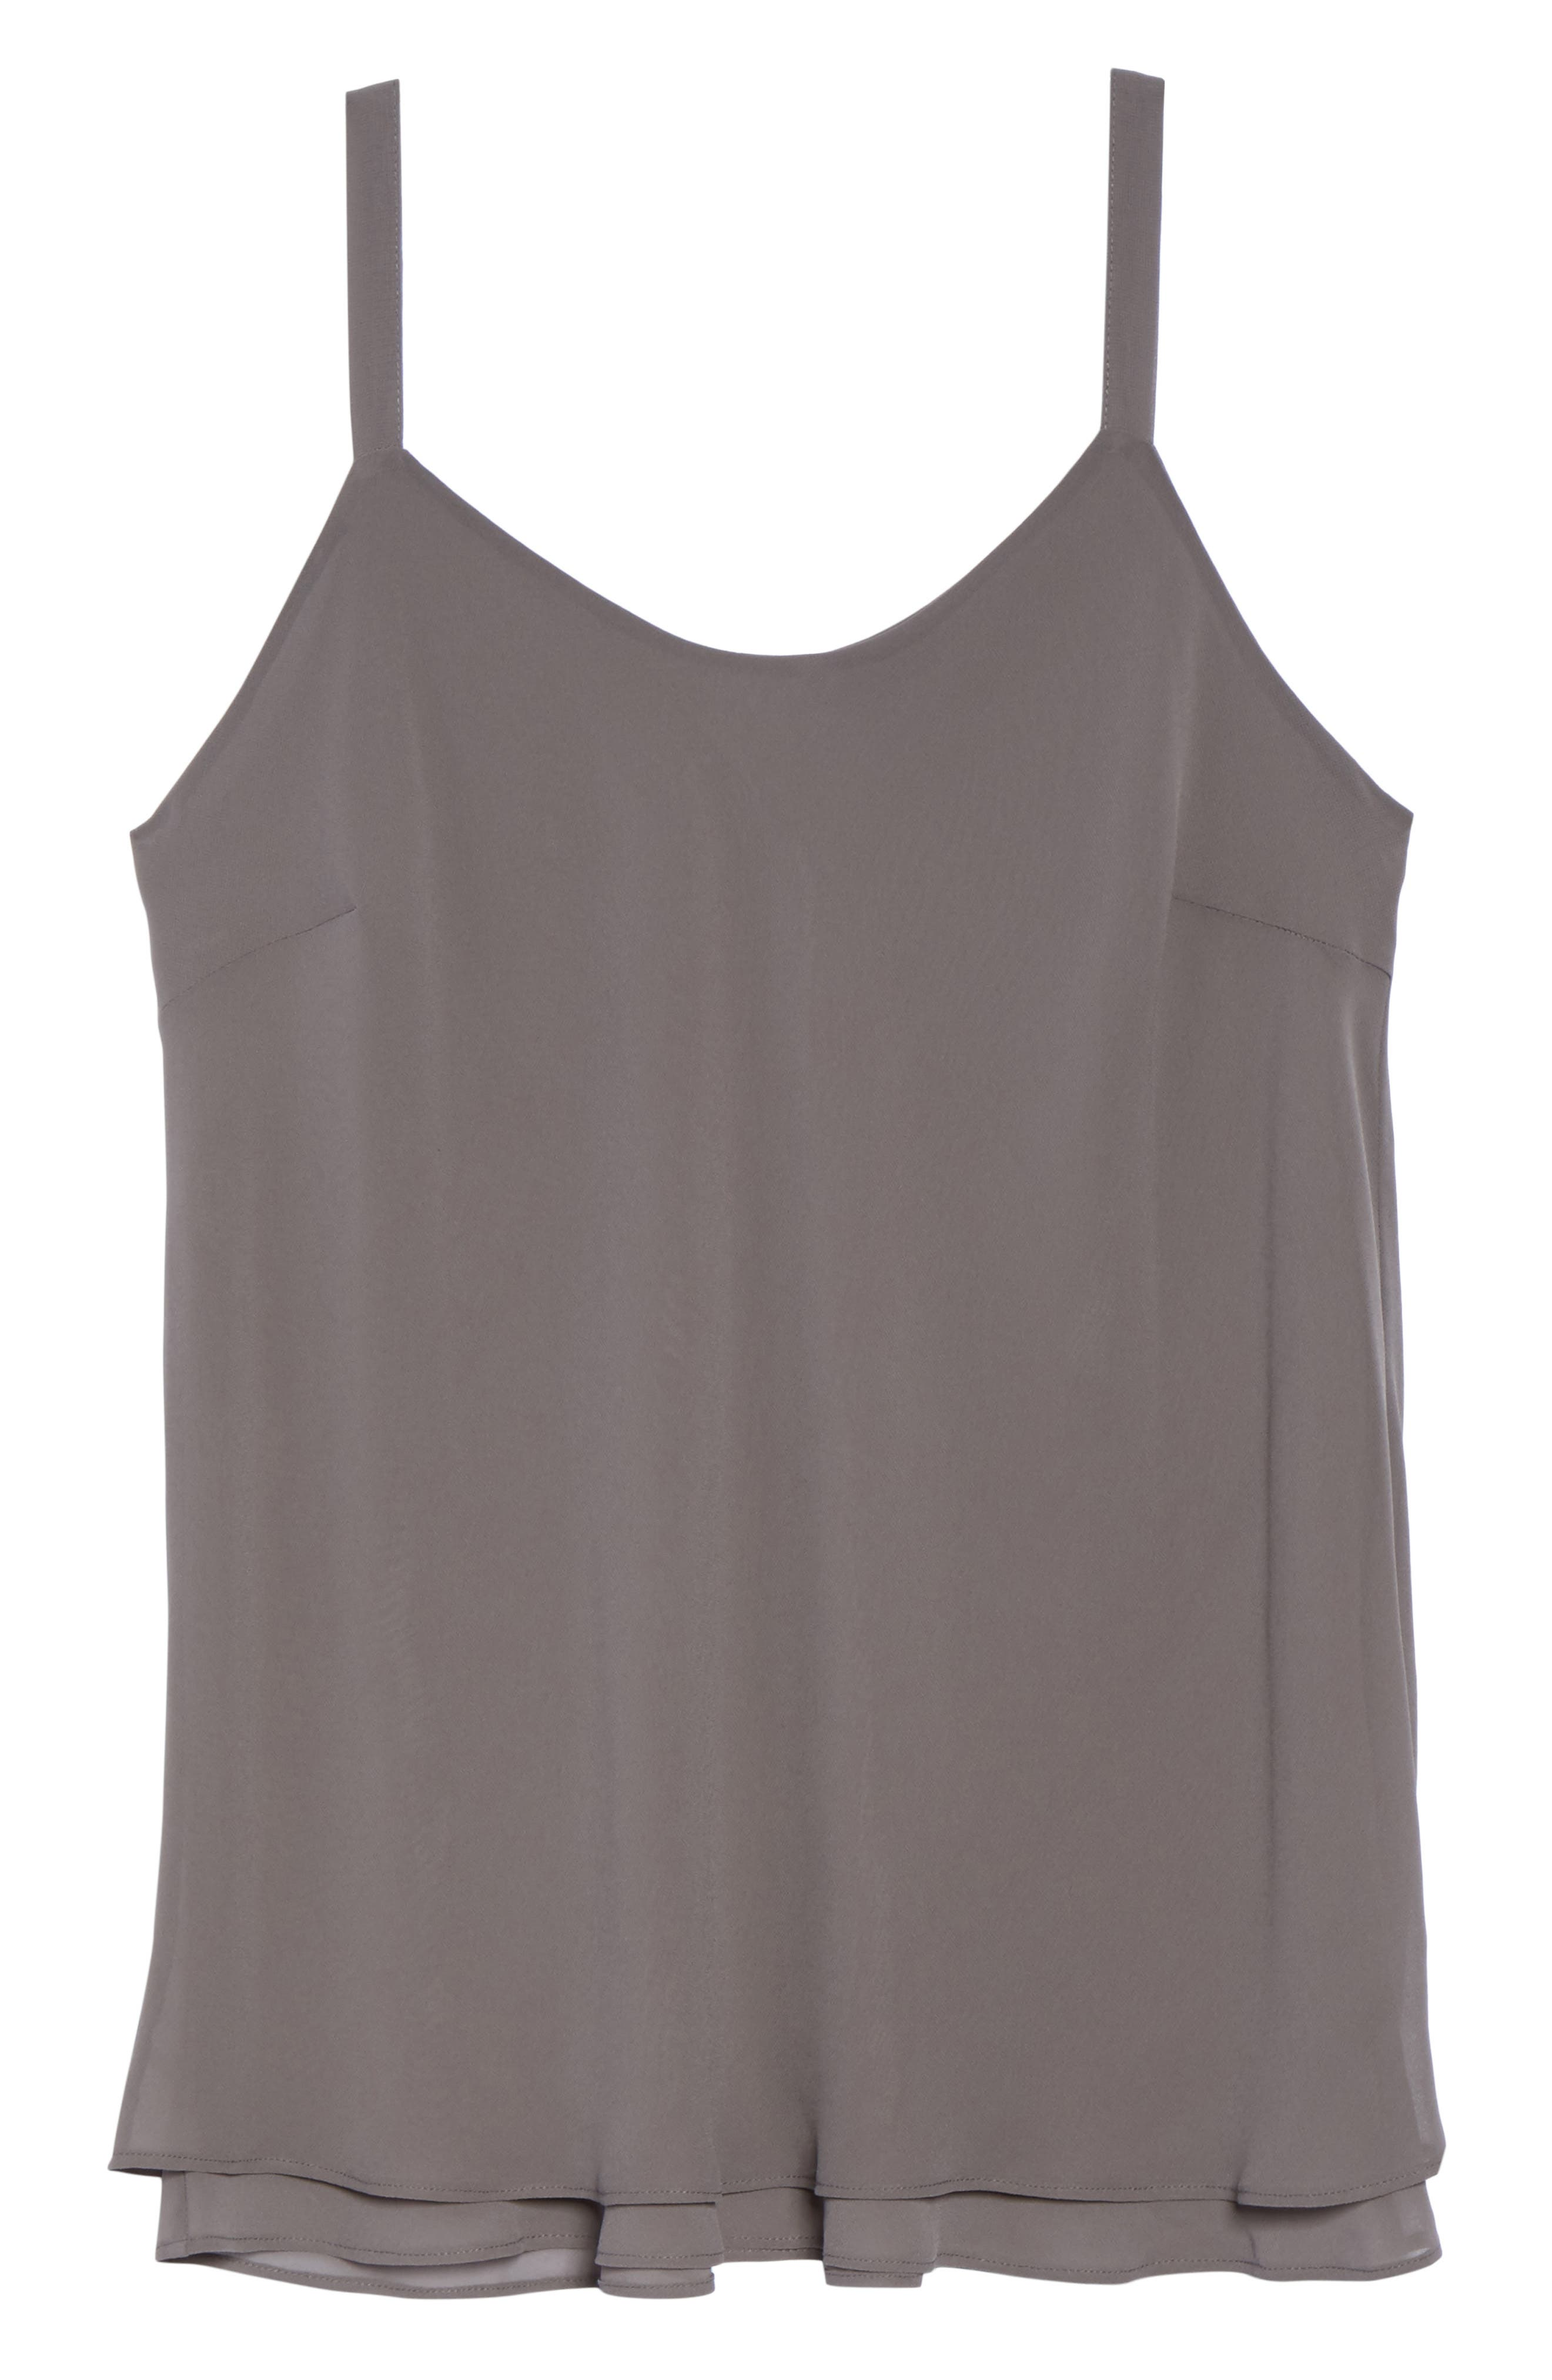 Paired Up Tank,                             Alternate thumbnail 6, color,                             054